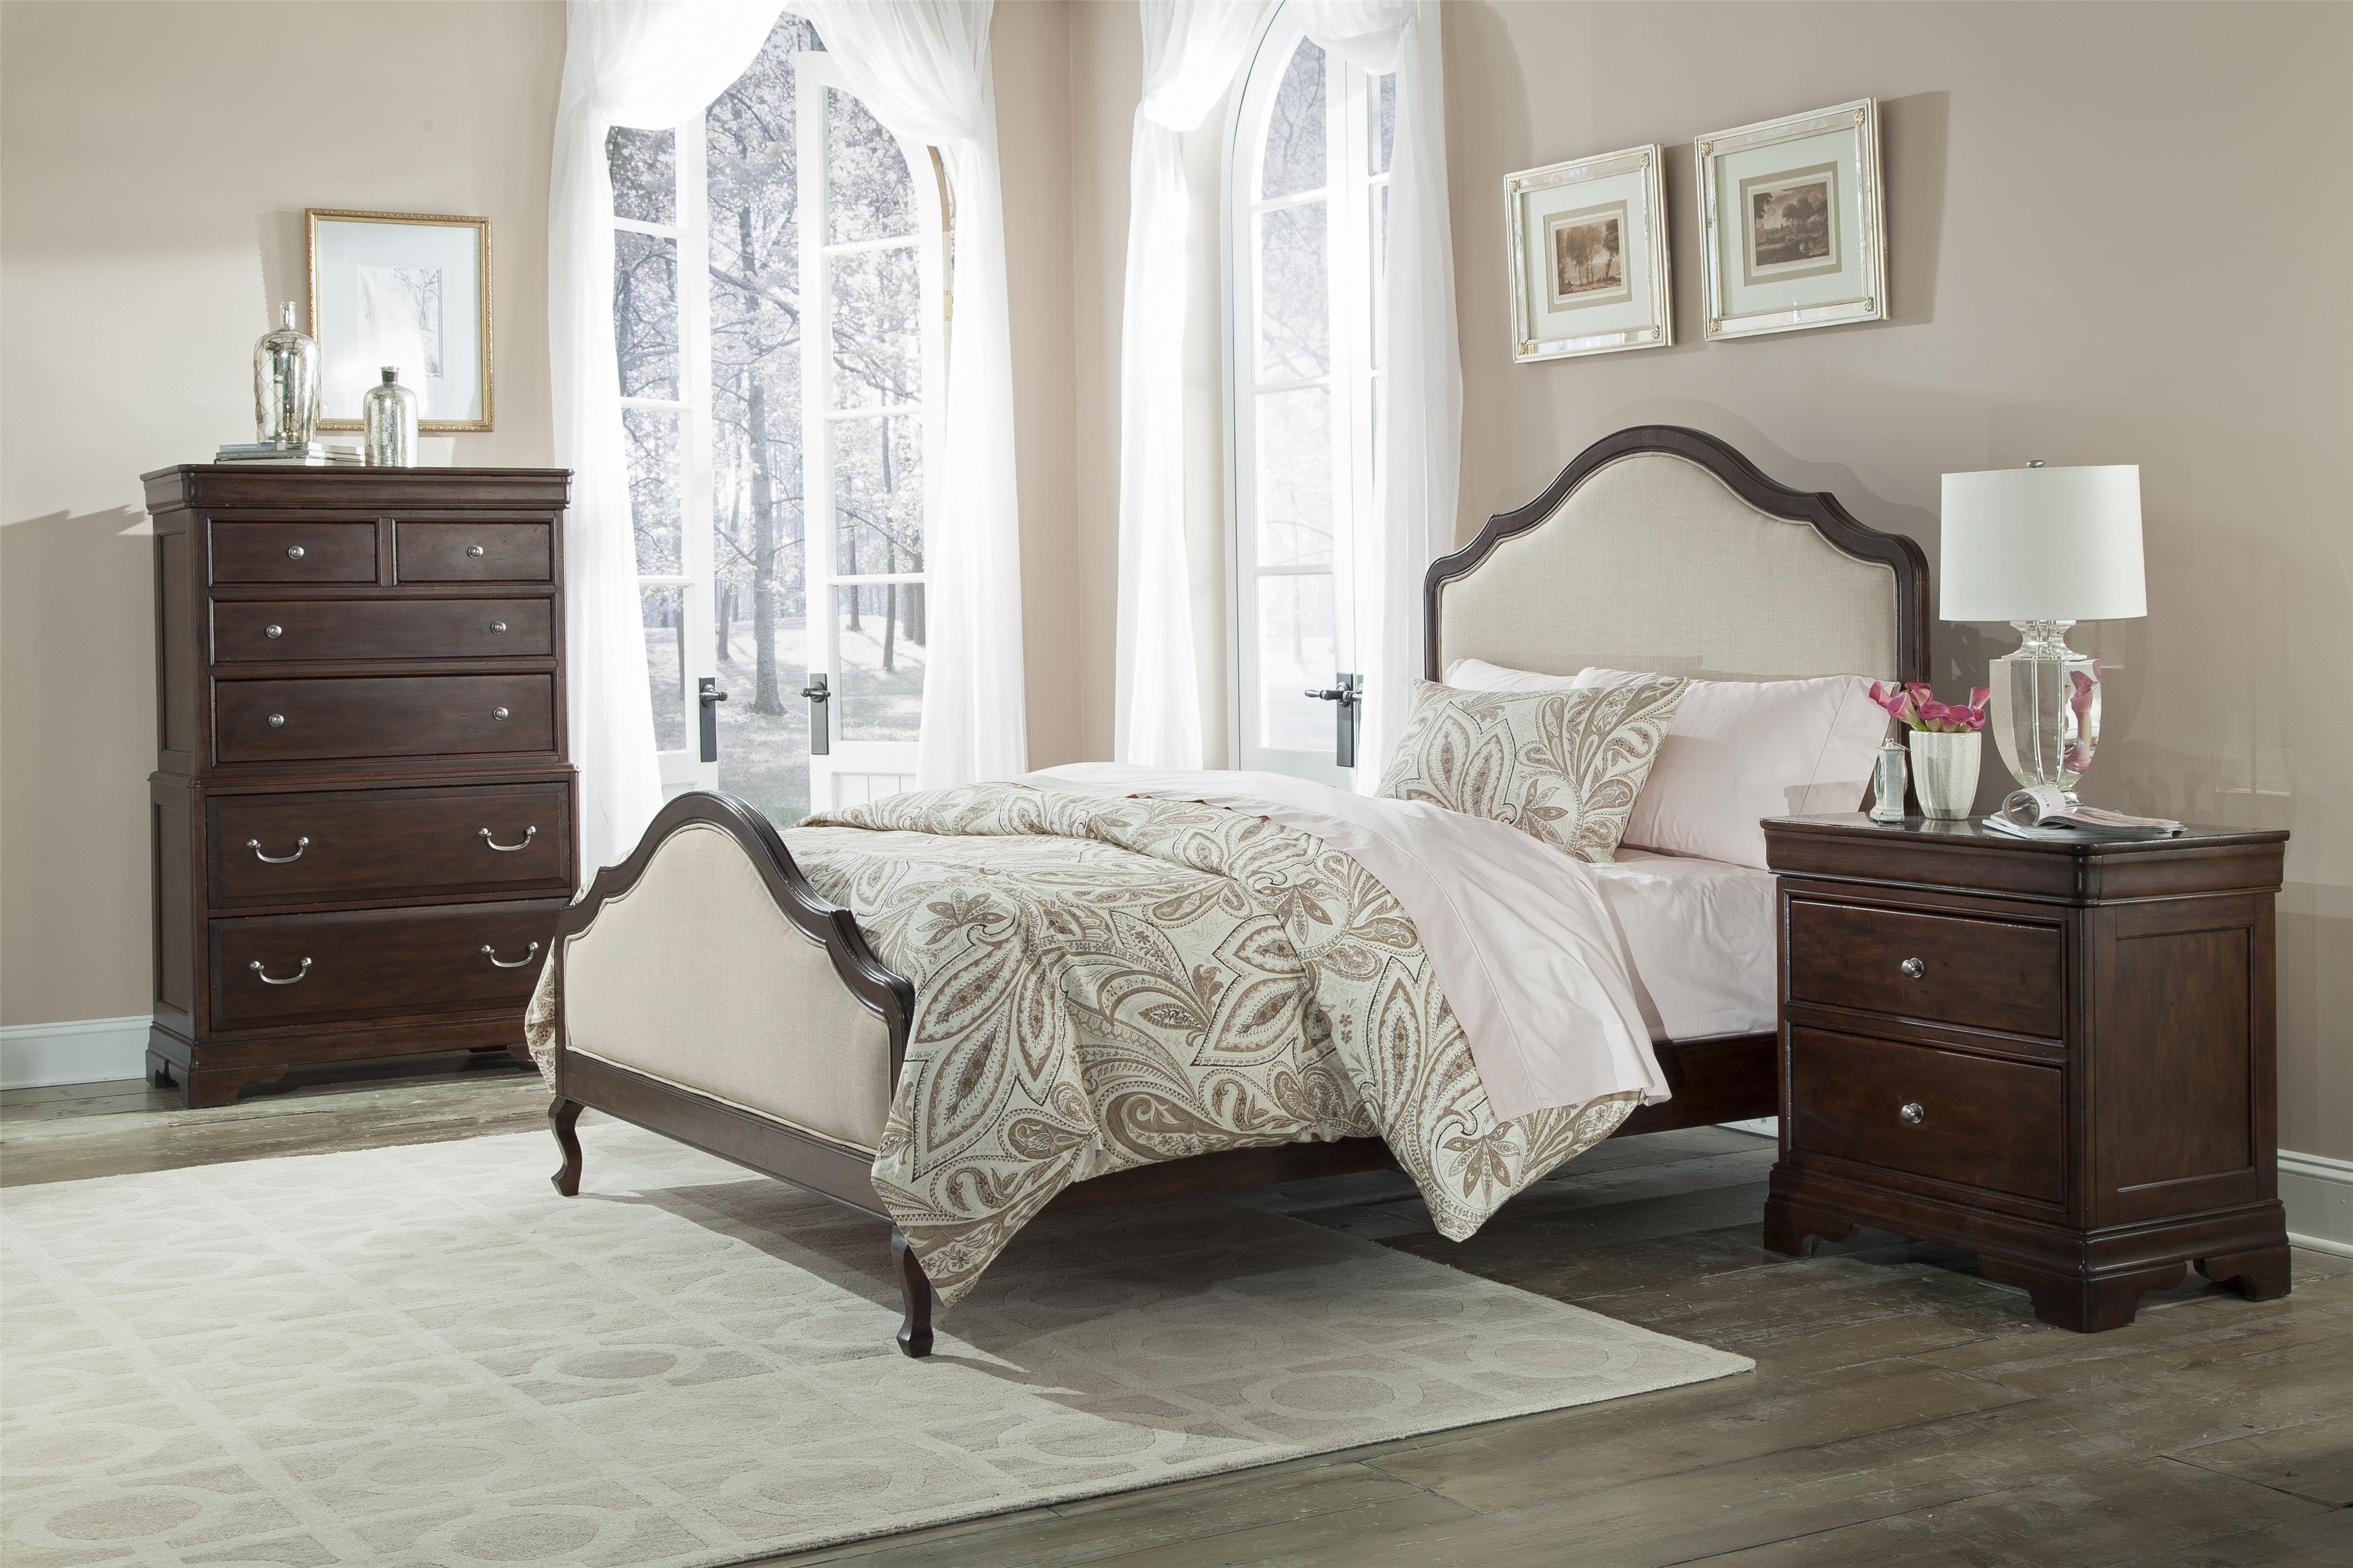 Cresent Fine Furniture Provence Queen Bedroom Group - Item Number: 1700 Q Bedroom Group 3